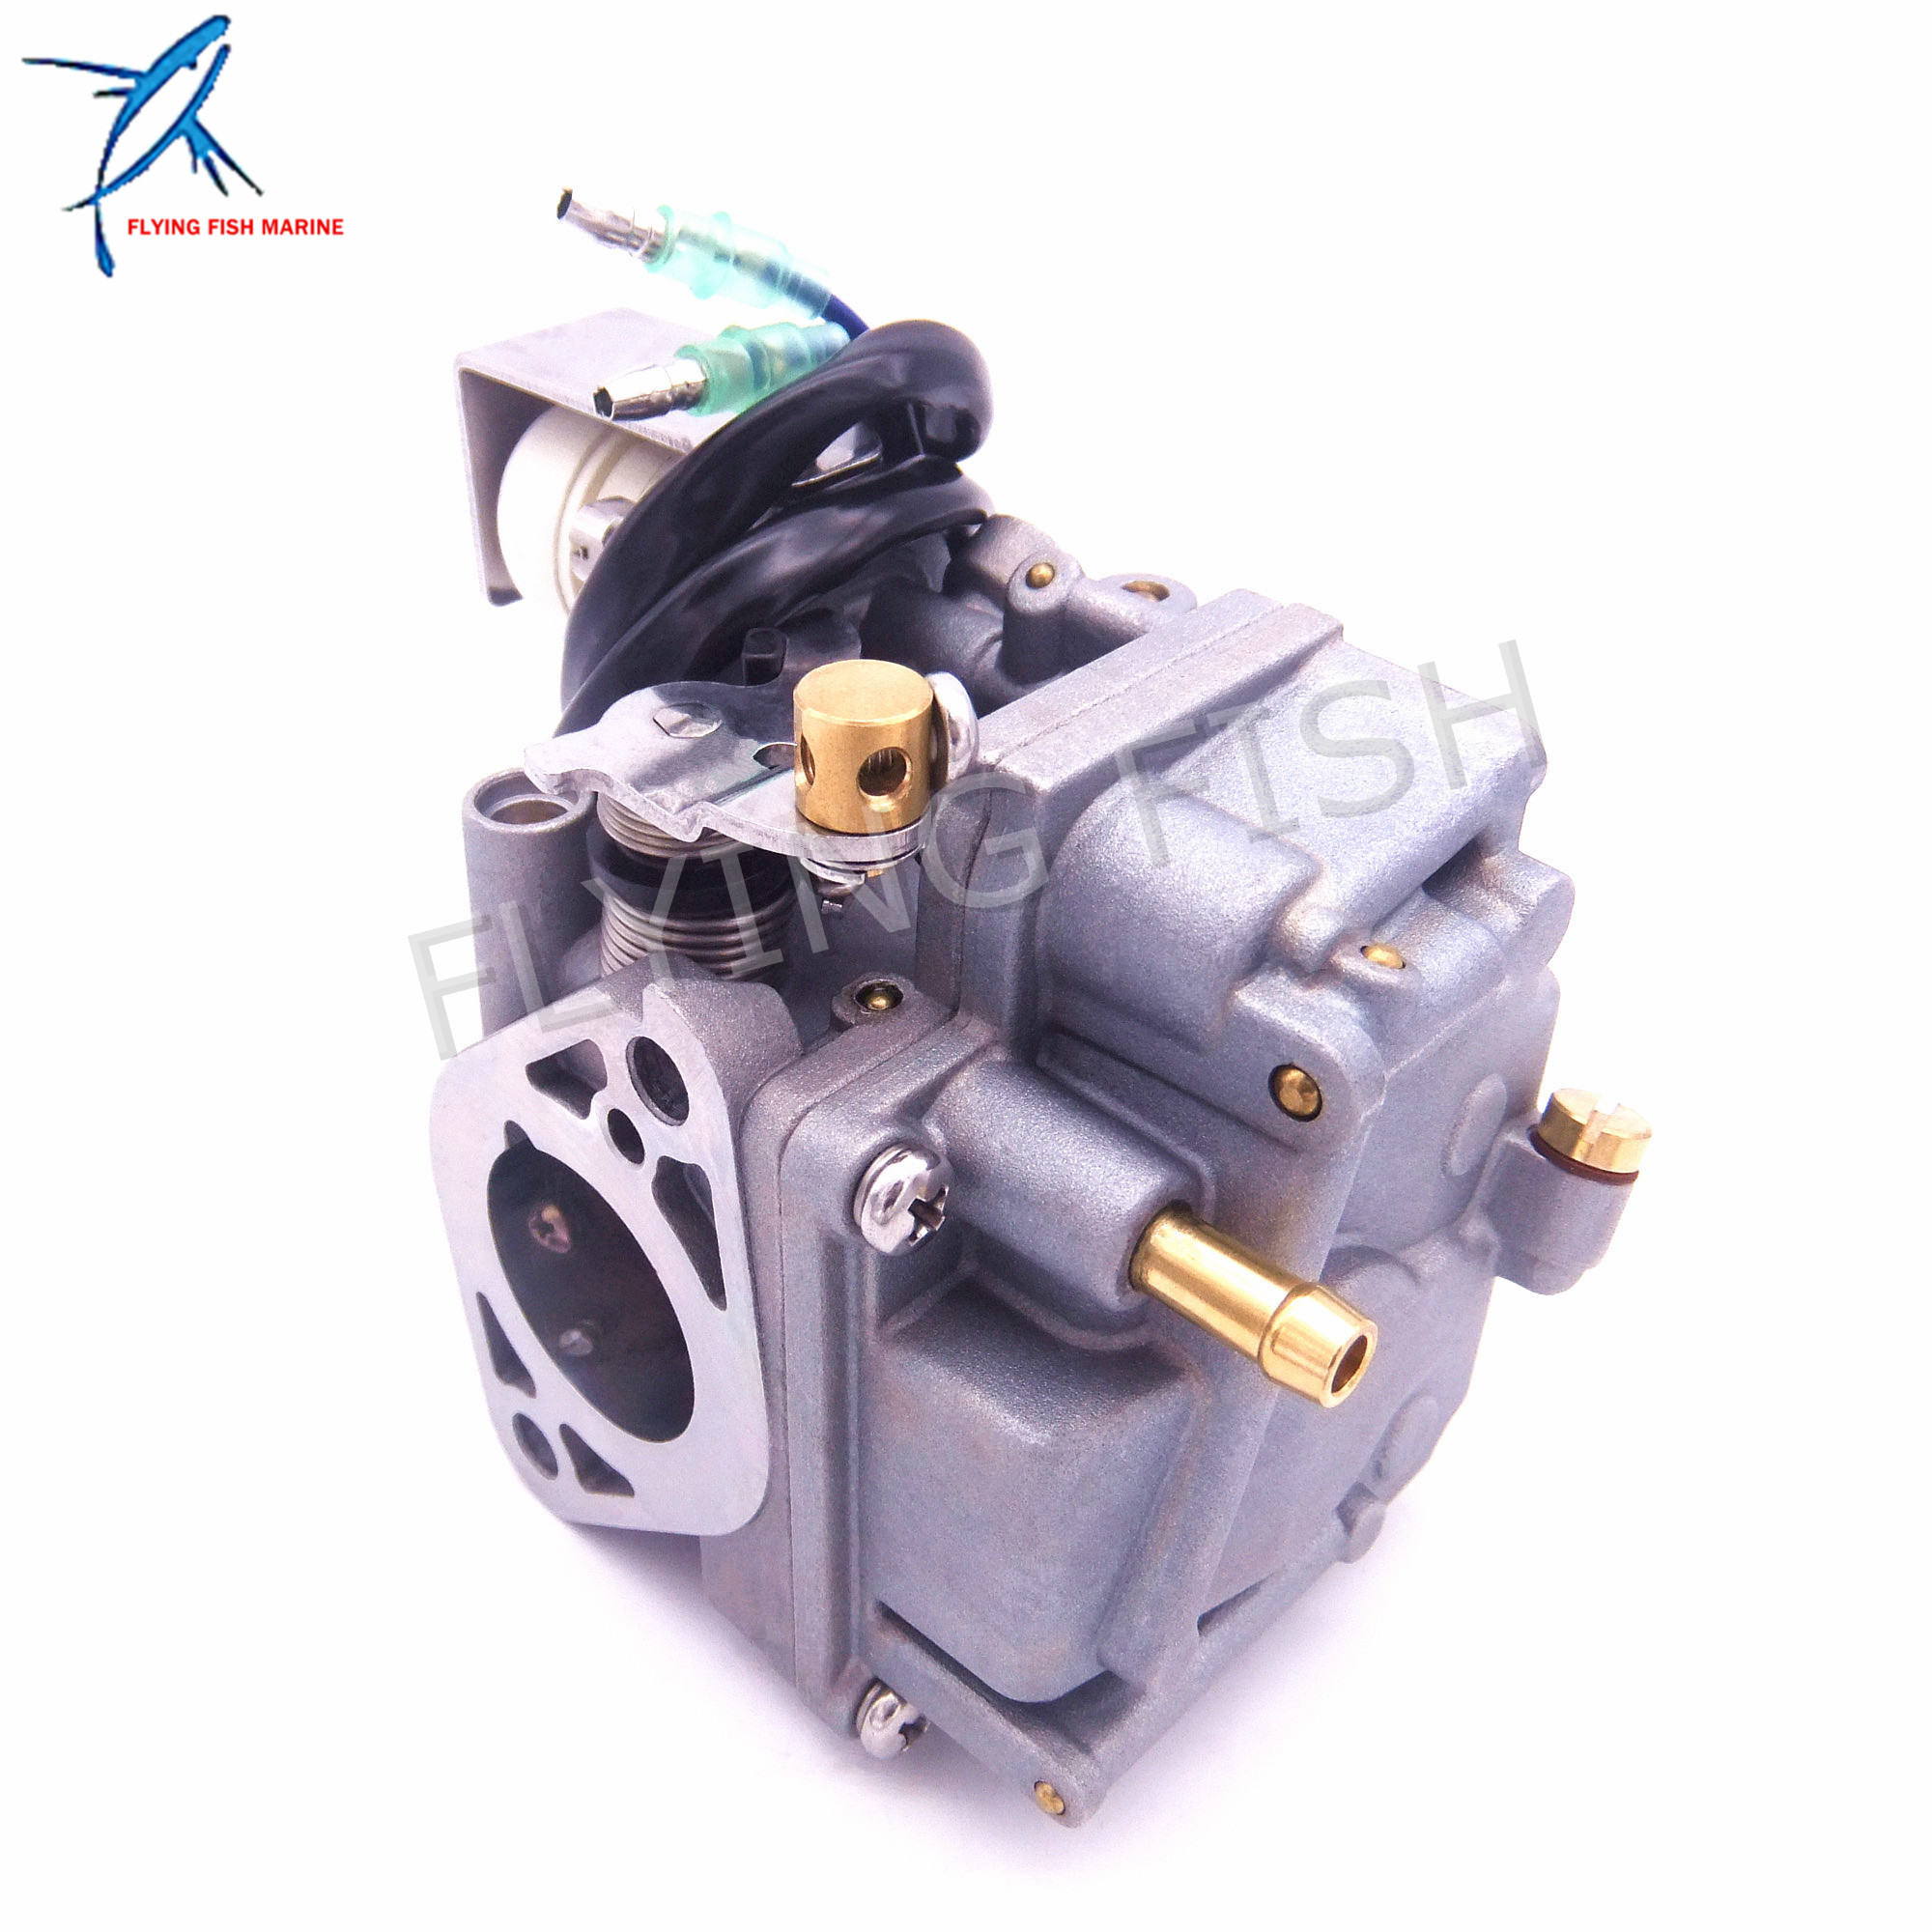 Image 2 - Outboard Engine Carburetor Assy 6AH 14301 00 6AH 14301 01 for Yamaha 4 stroke F20 Boat Motor Free Shipping-in Boat Engine from Automobiles & Motorcycles